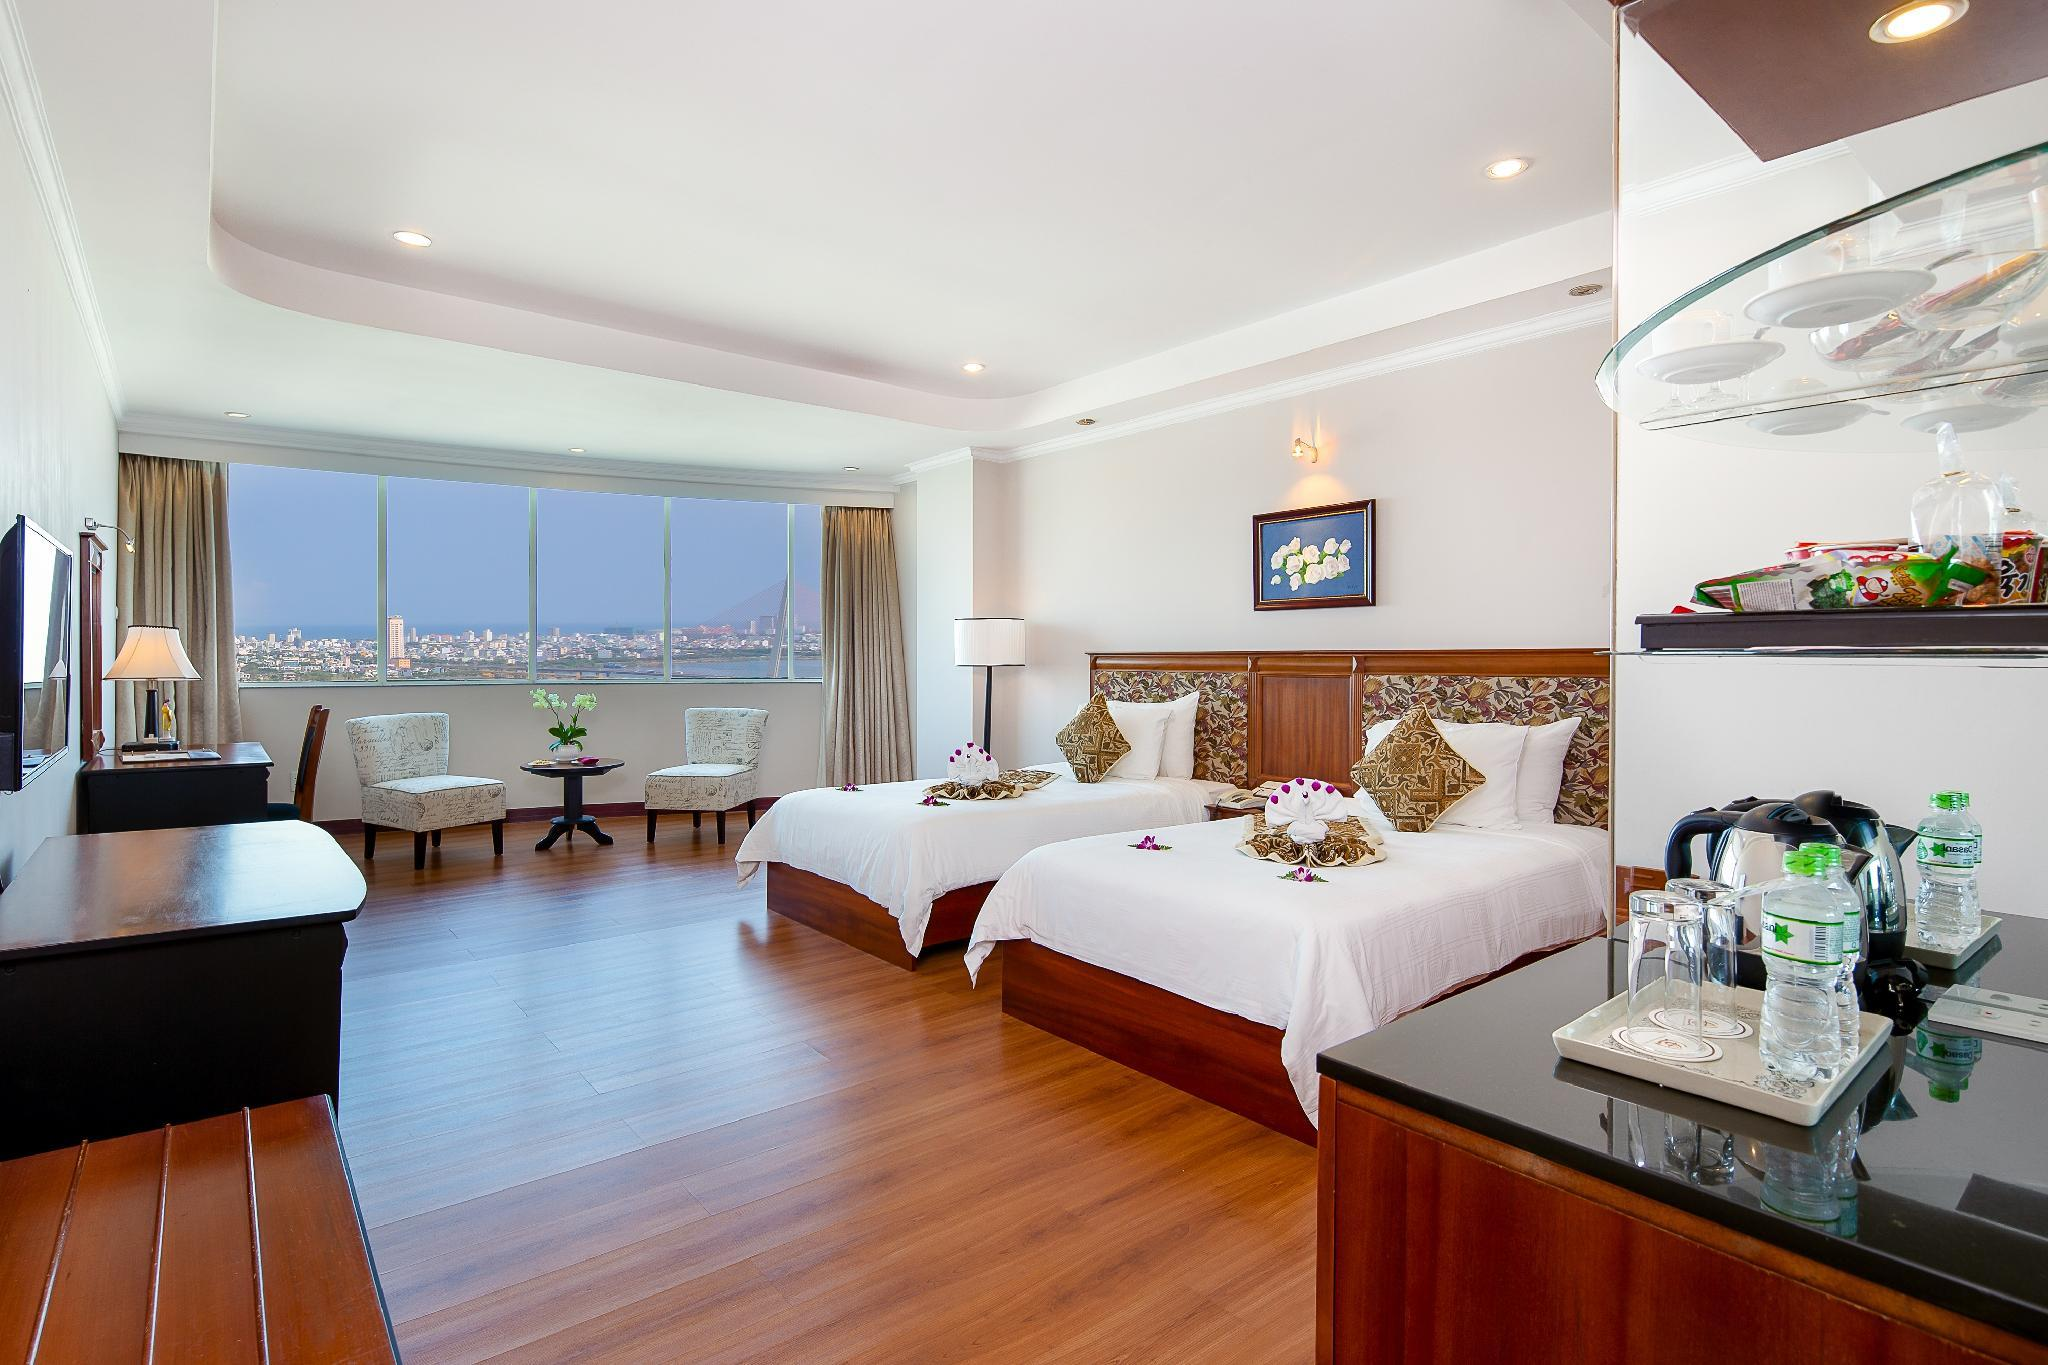 Muong Thanh Luxury Song Han Hotel, Hải Châu